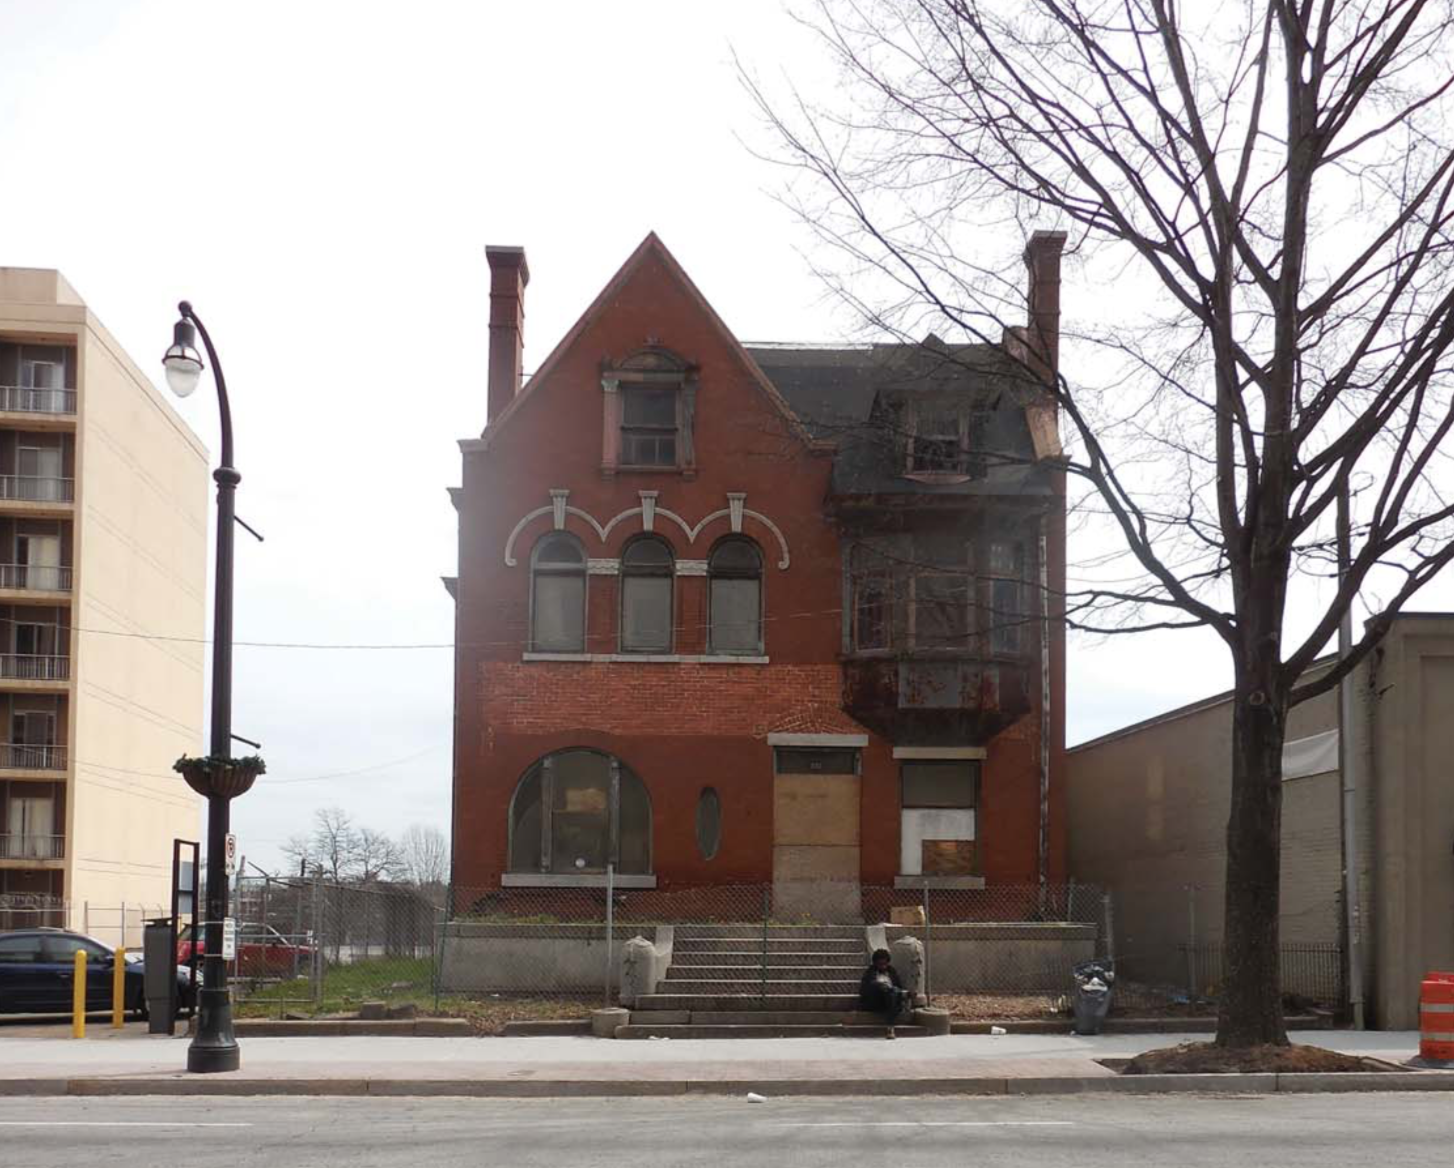 Two-story Victorian mansion in a rundown state.